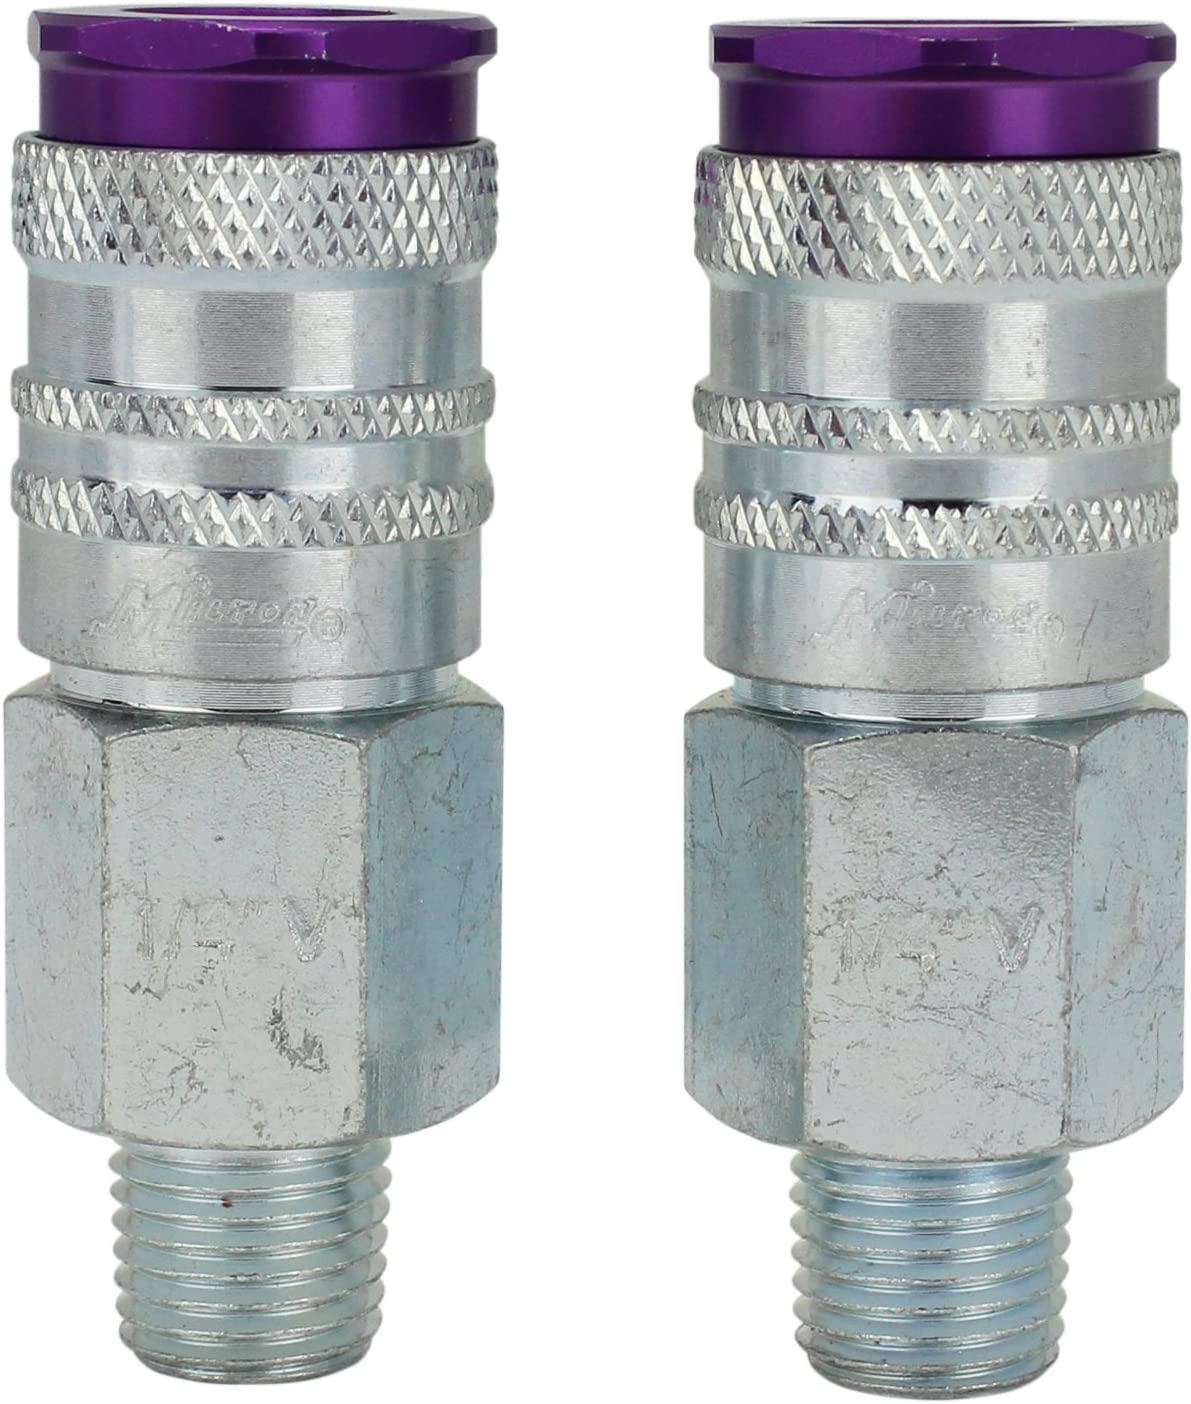 "ColorFit by Milton HIGHFLOWPRO S-314VKIT Coupler & Plug Kit - (V-Style, Purple) - 1/4"" NPT, (14-Piece) - -"